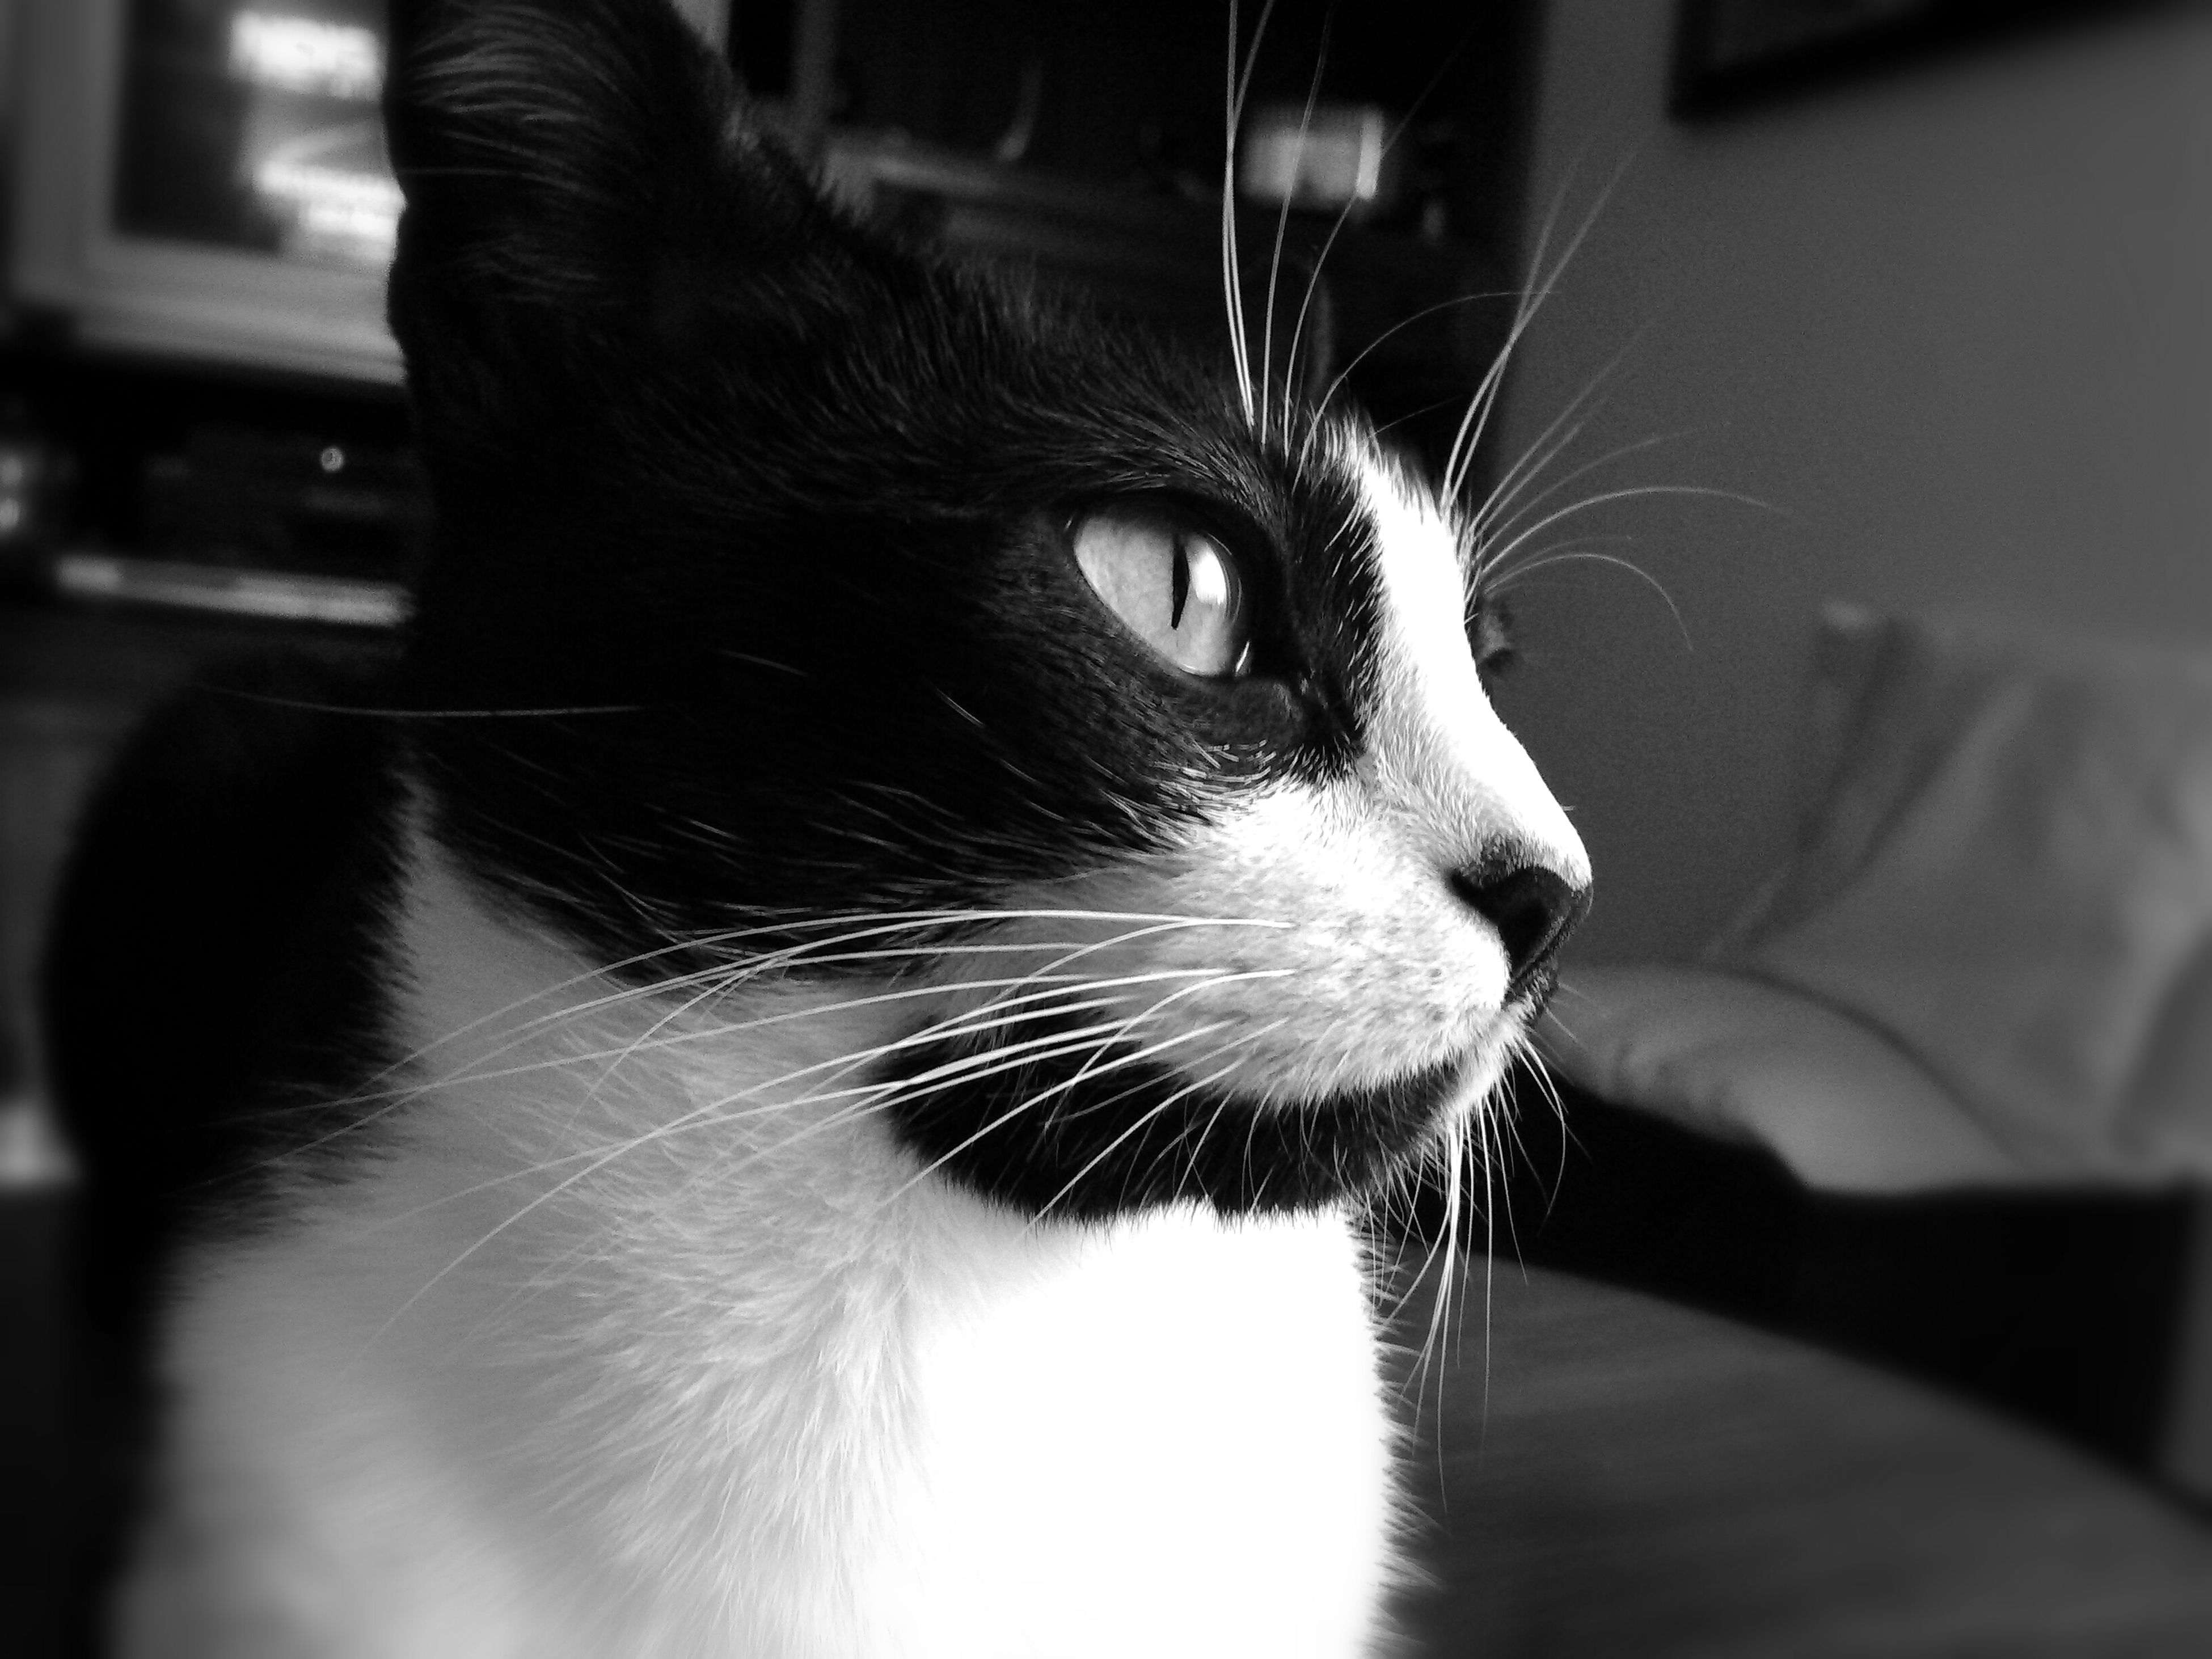 pets, domestic cat, domestic animals, one animal, cat, animal themes, mammal, indoors, feline, whisker, close-up, animal head, focus on foreground, looking away, animal body part, selective focus, part of, animal eye, no people, home interior